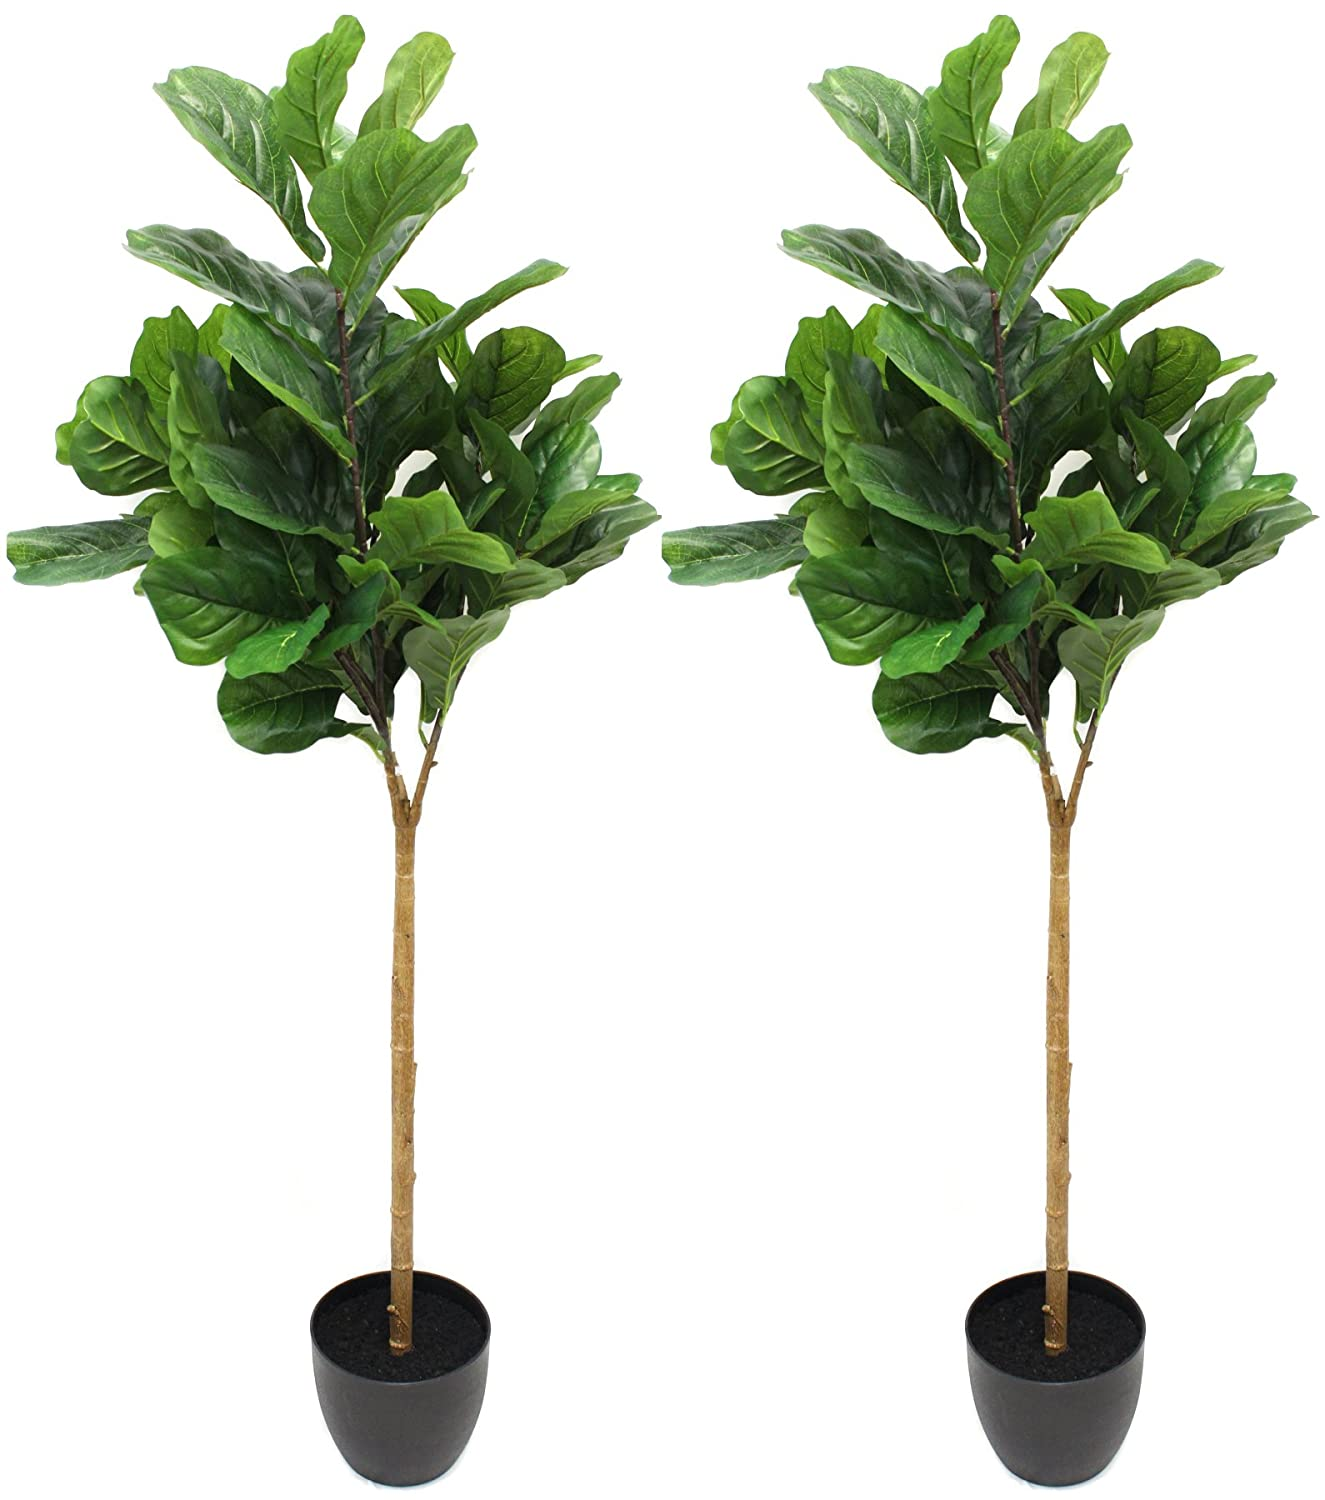 (2 Pack) 5 Foot Fiddle Leaf Fig Tree - Realistic Artificial Home Decor (2) Silk Road Home